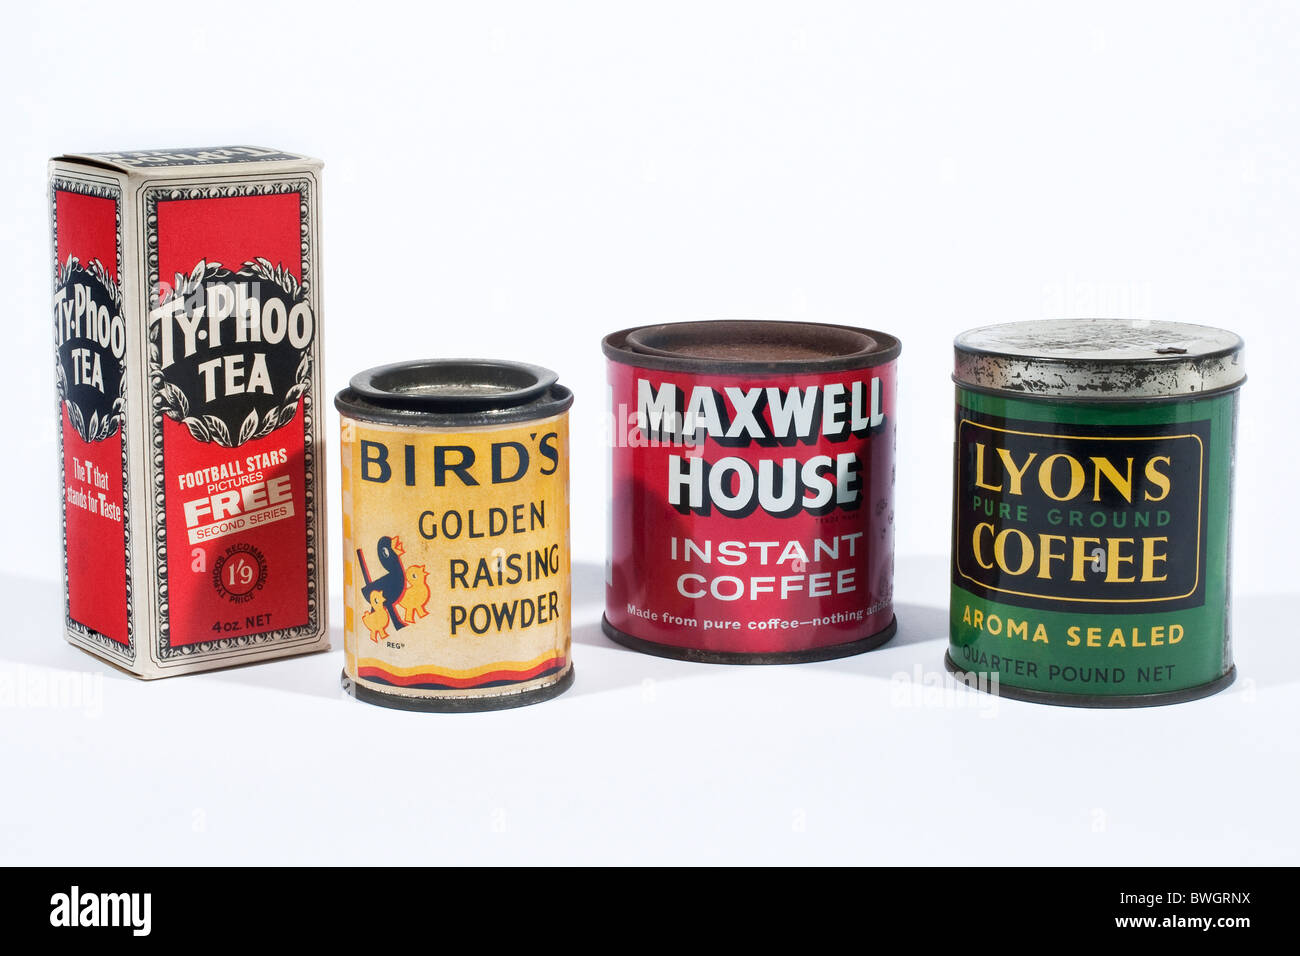 Old tins and packaging for tea, coffee, and Golden Raising Powder - Stock Image